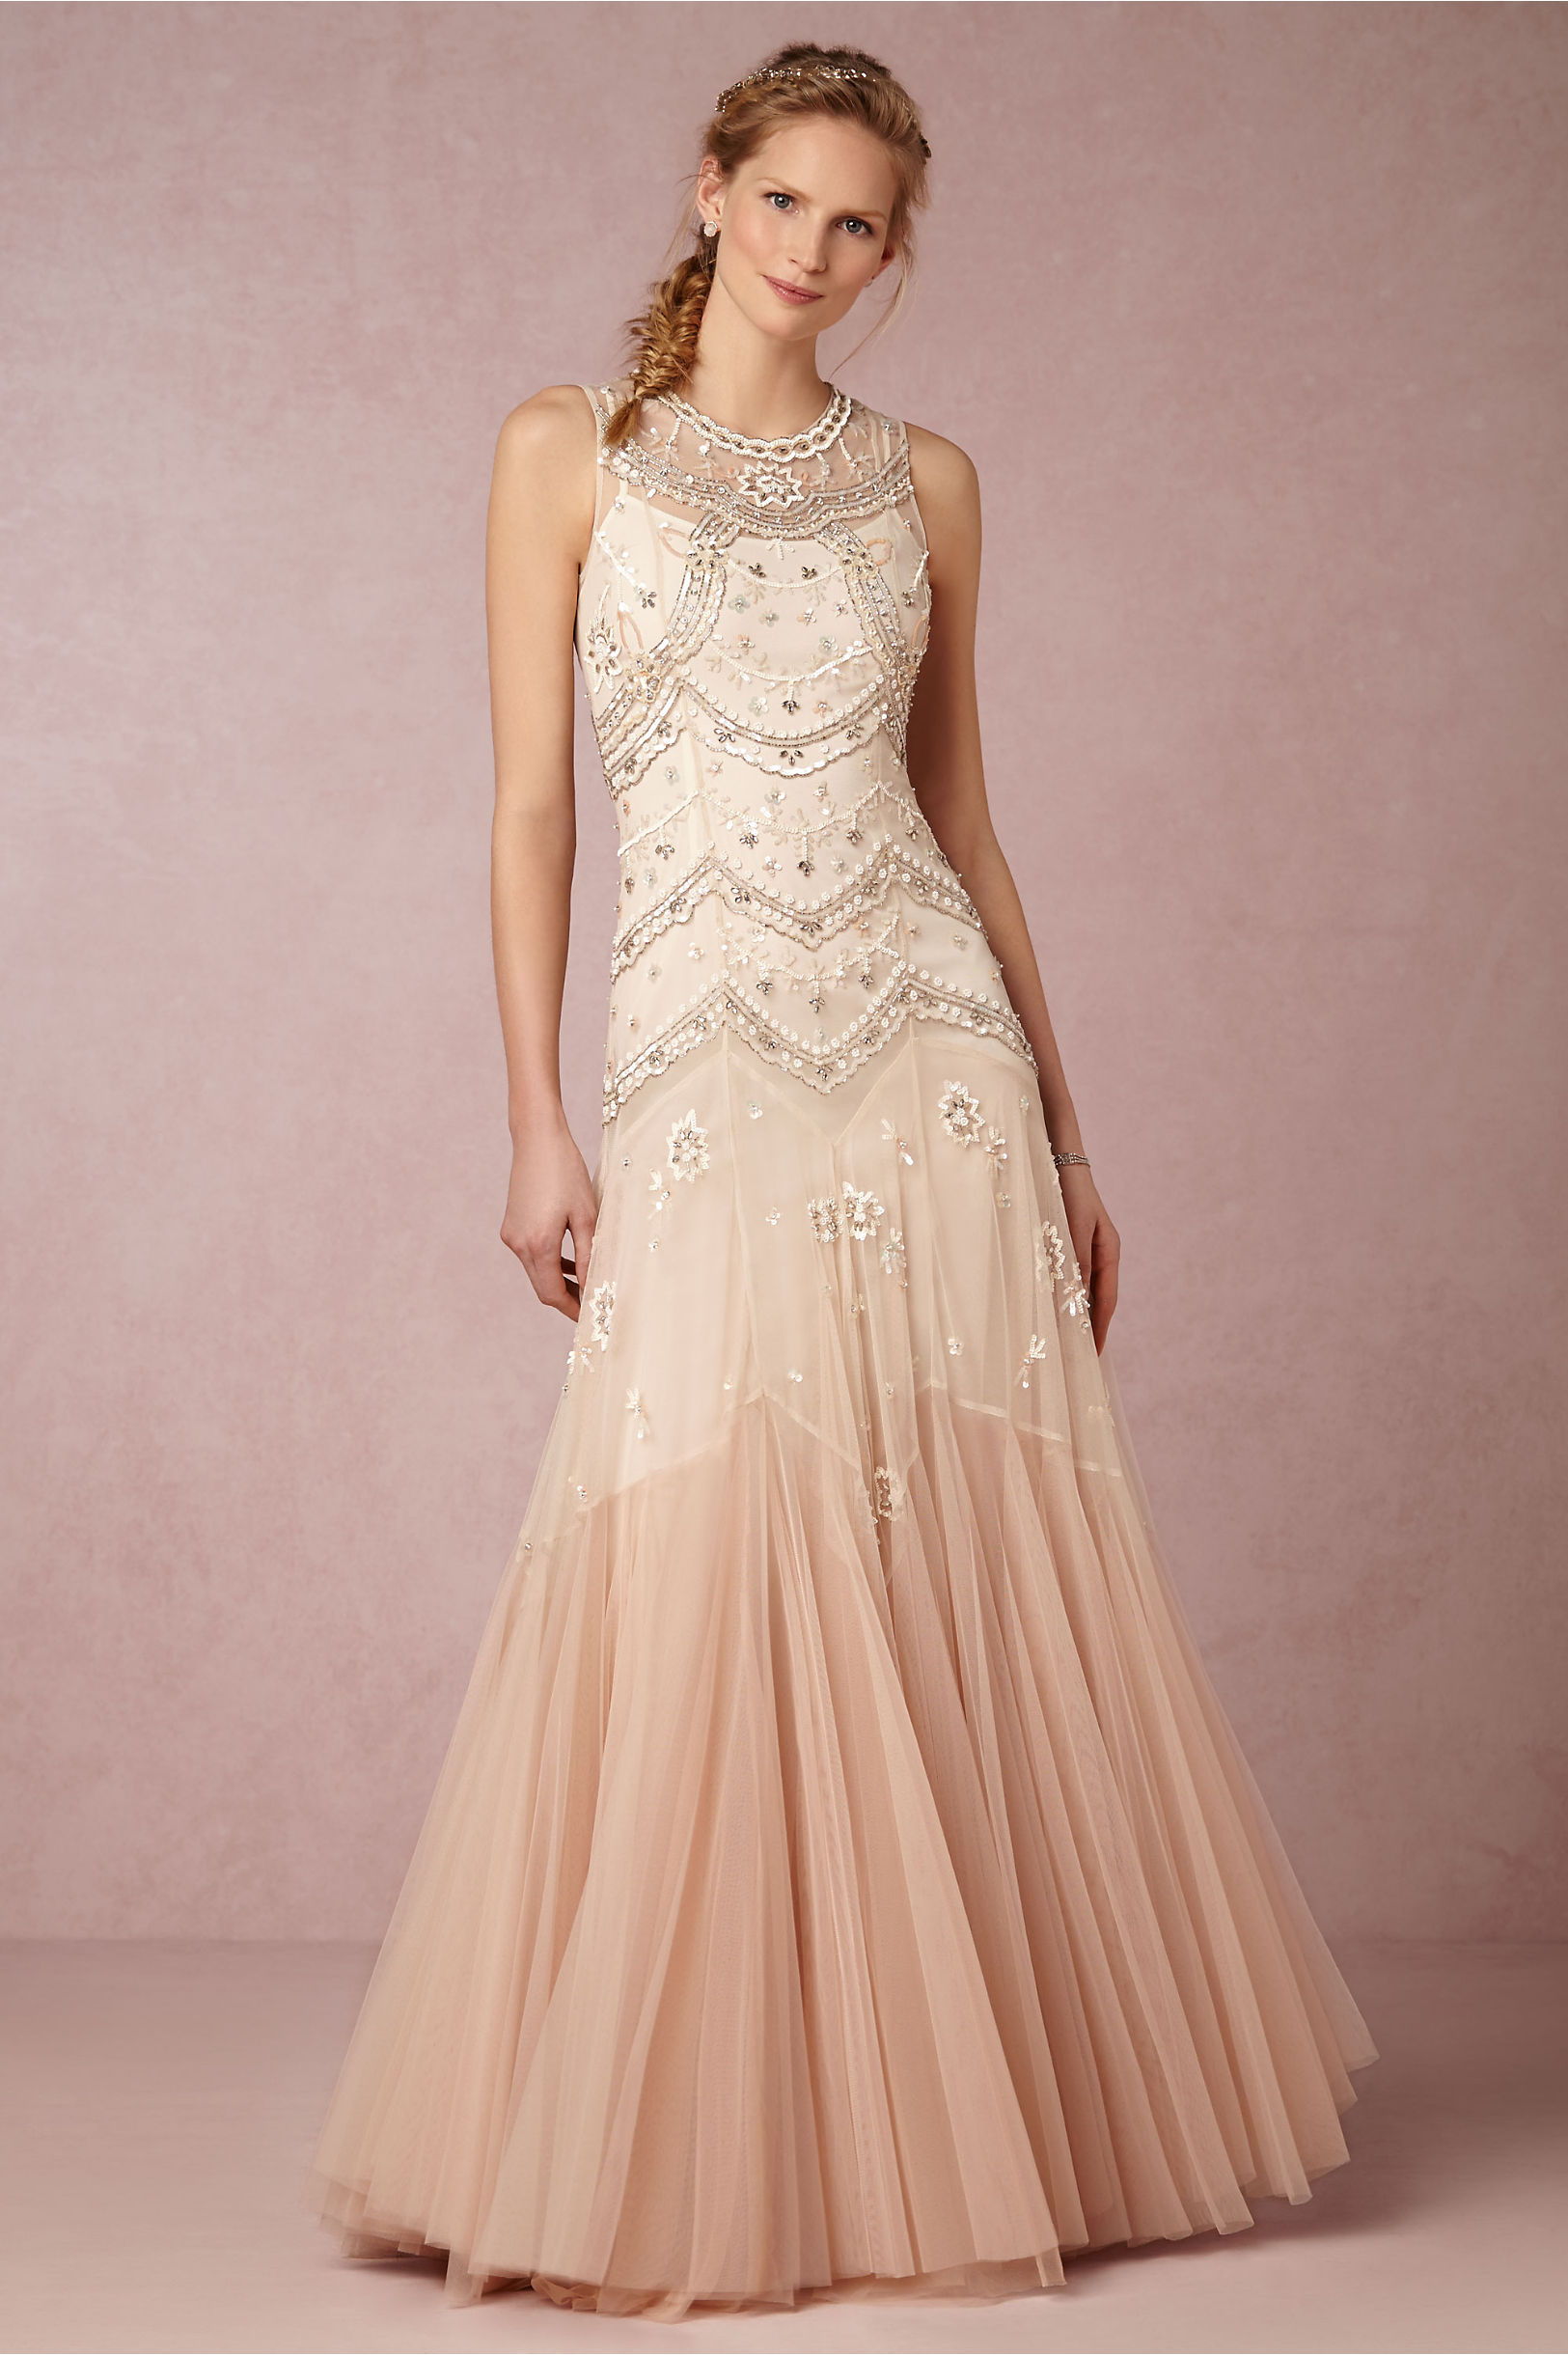 Cate Gown Sophisticated Wedding Dresses Gowns Wedding Dress Sizes